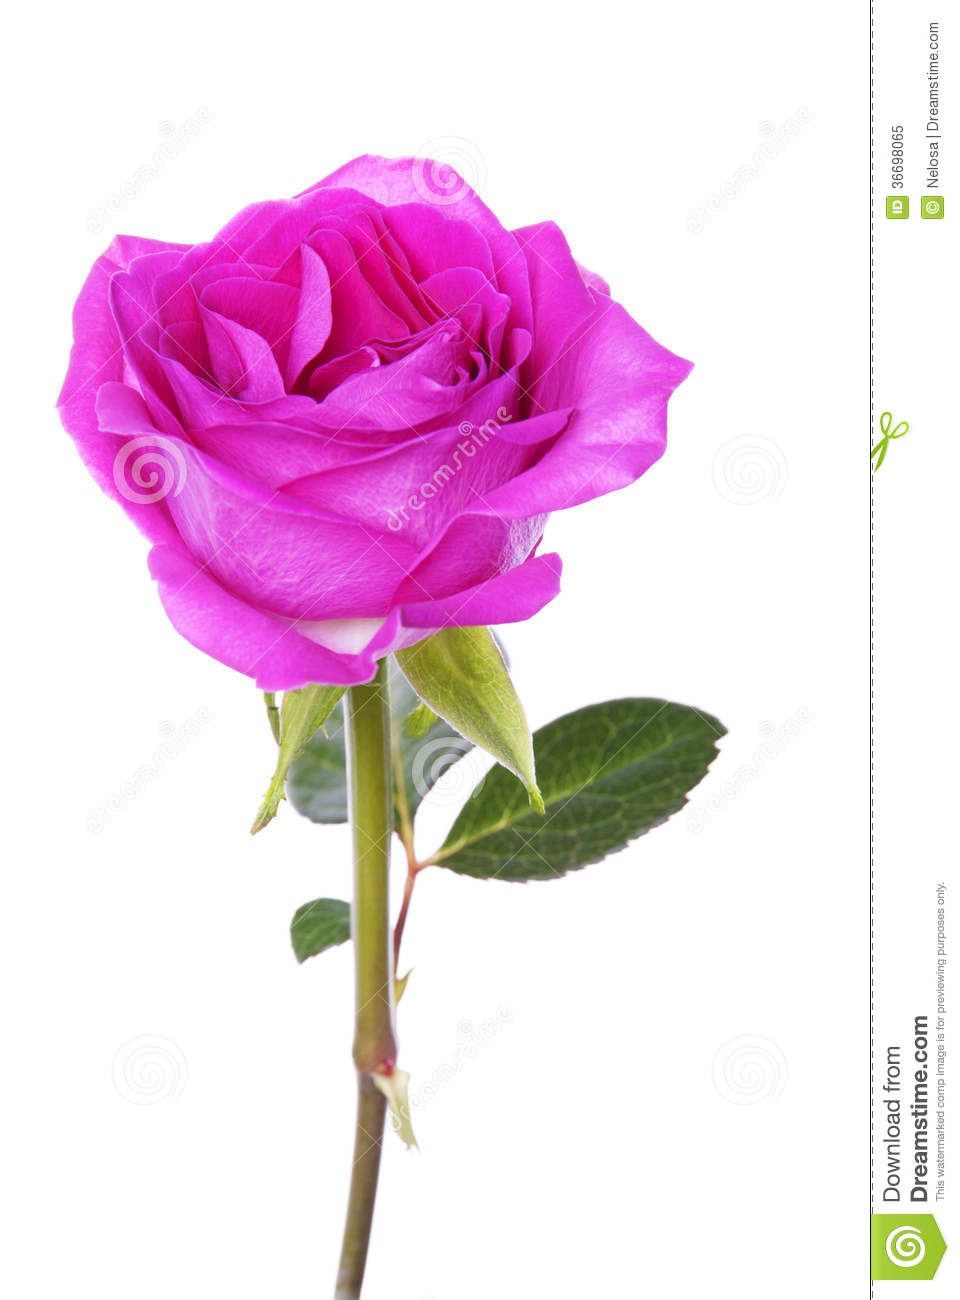 Pink Rose stock image. Image of - 87.3KB